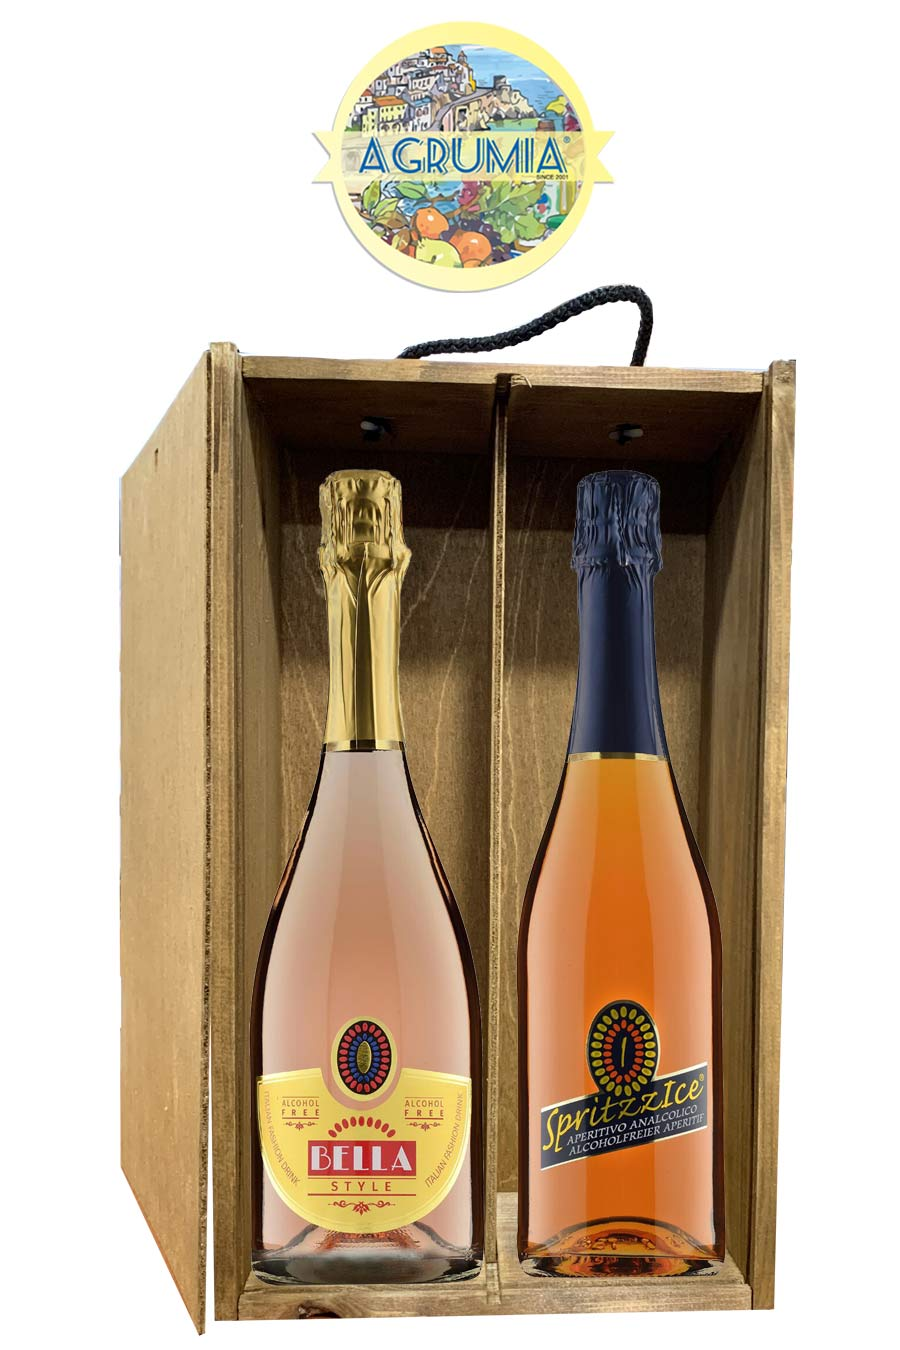 Agrumia Twin Alcohol-Free Wine Hamper